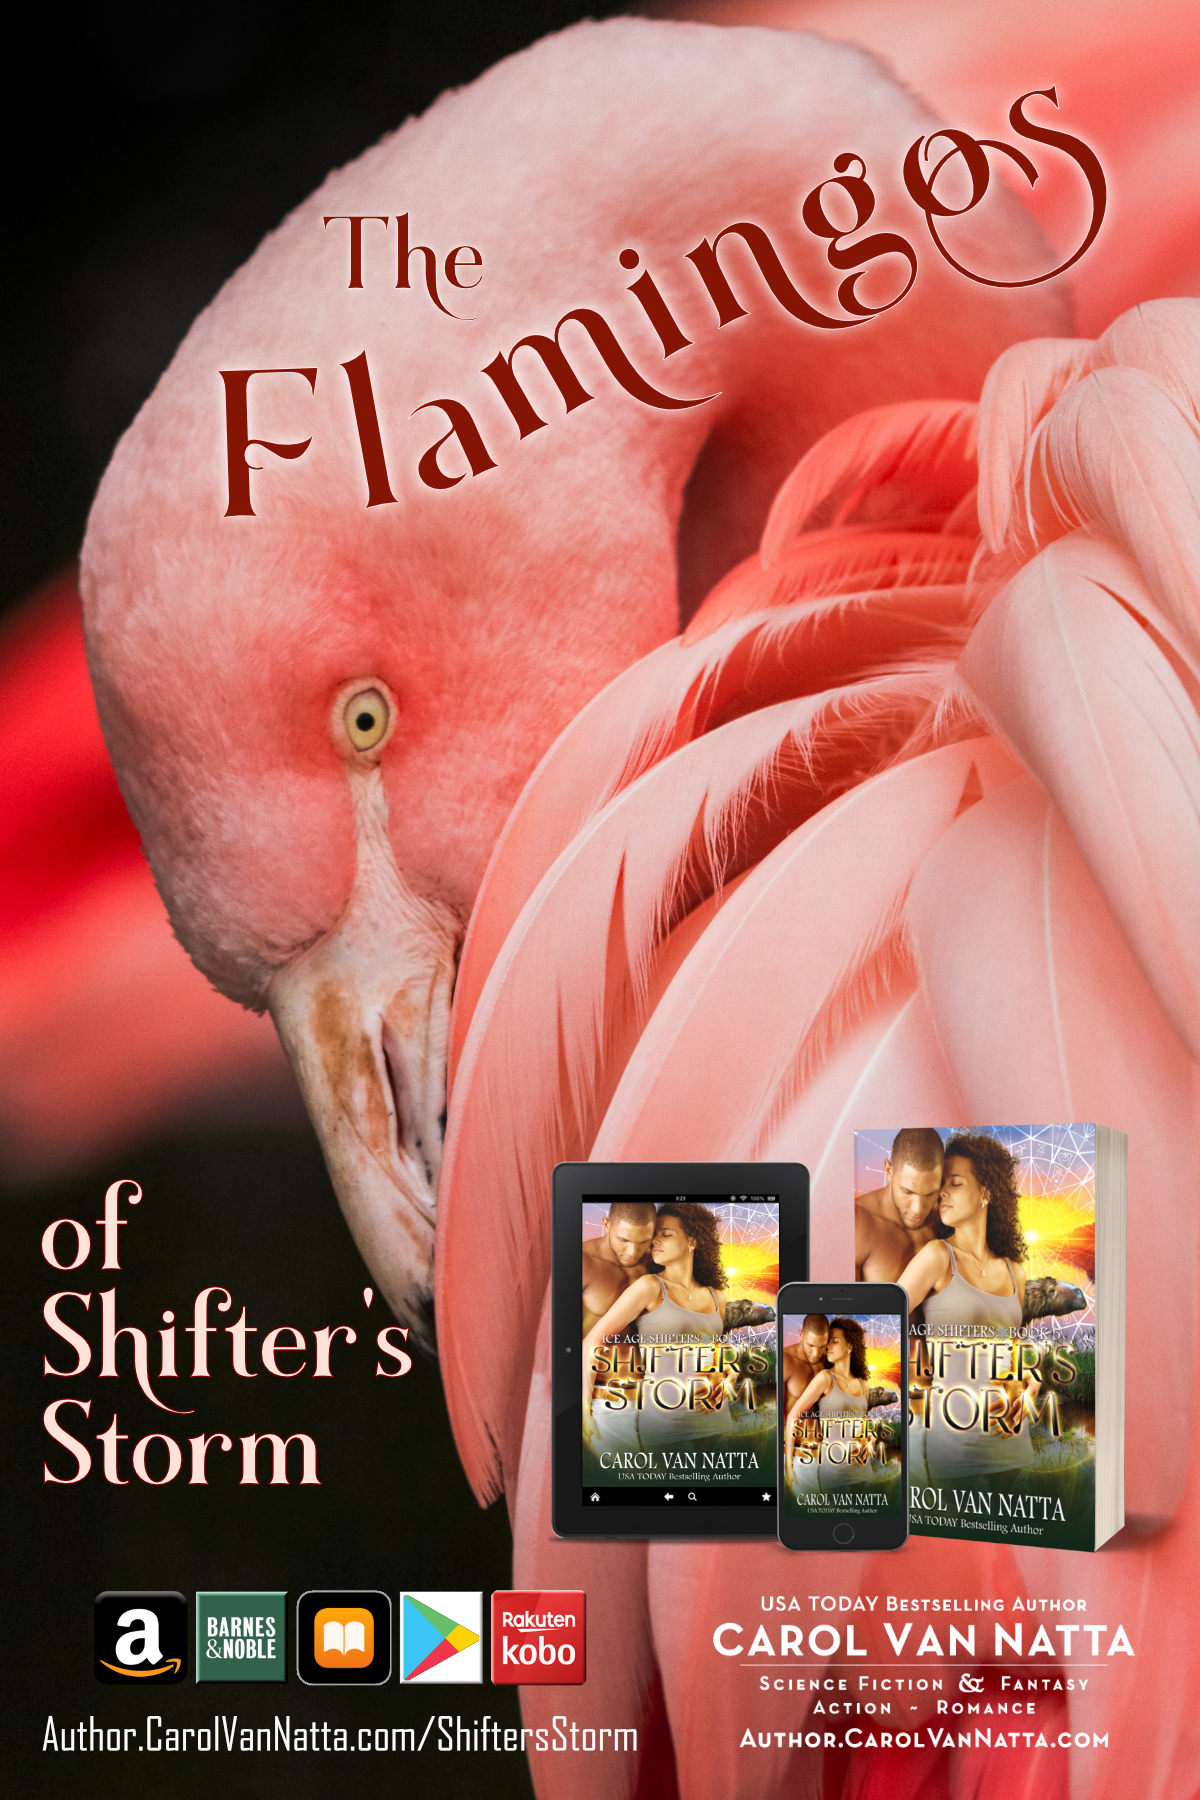 Shifters Storm stars a leopard, a sloth, and delightful flamingos